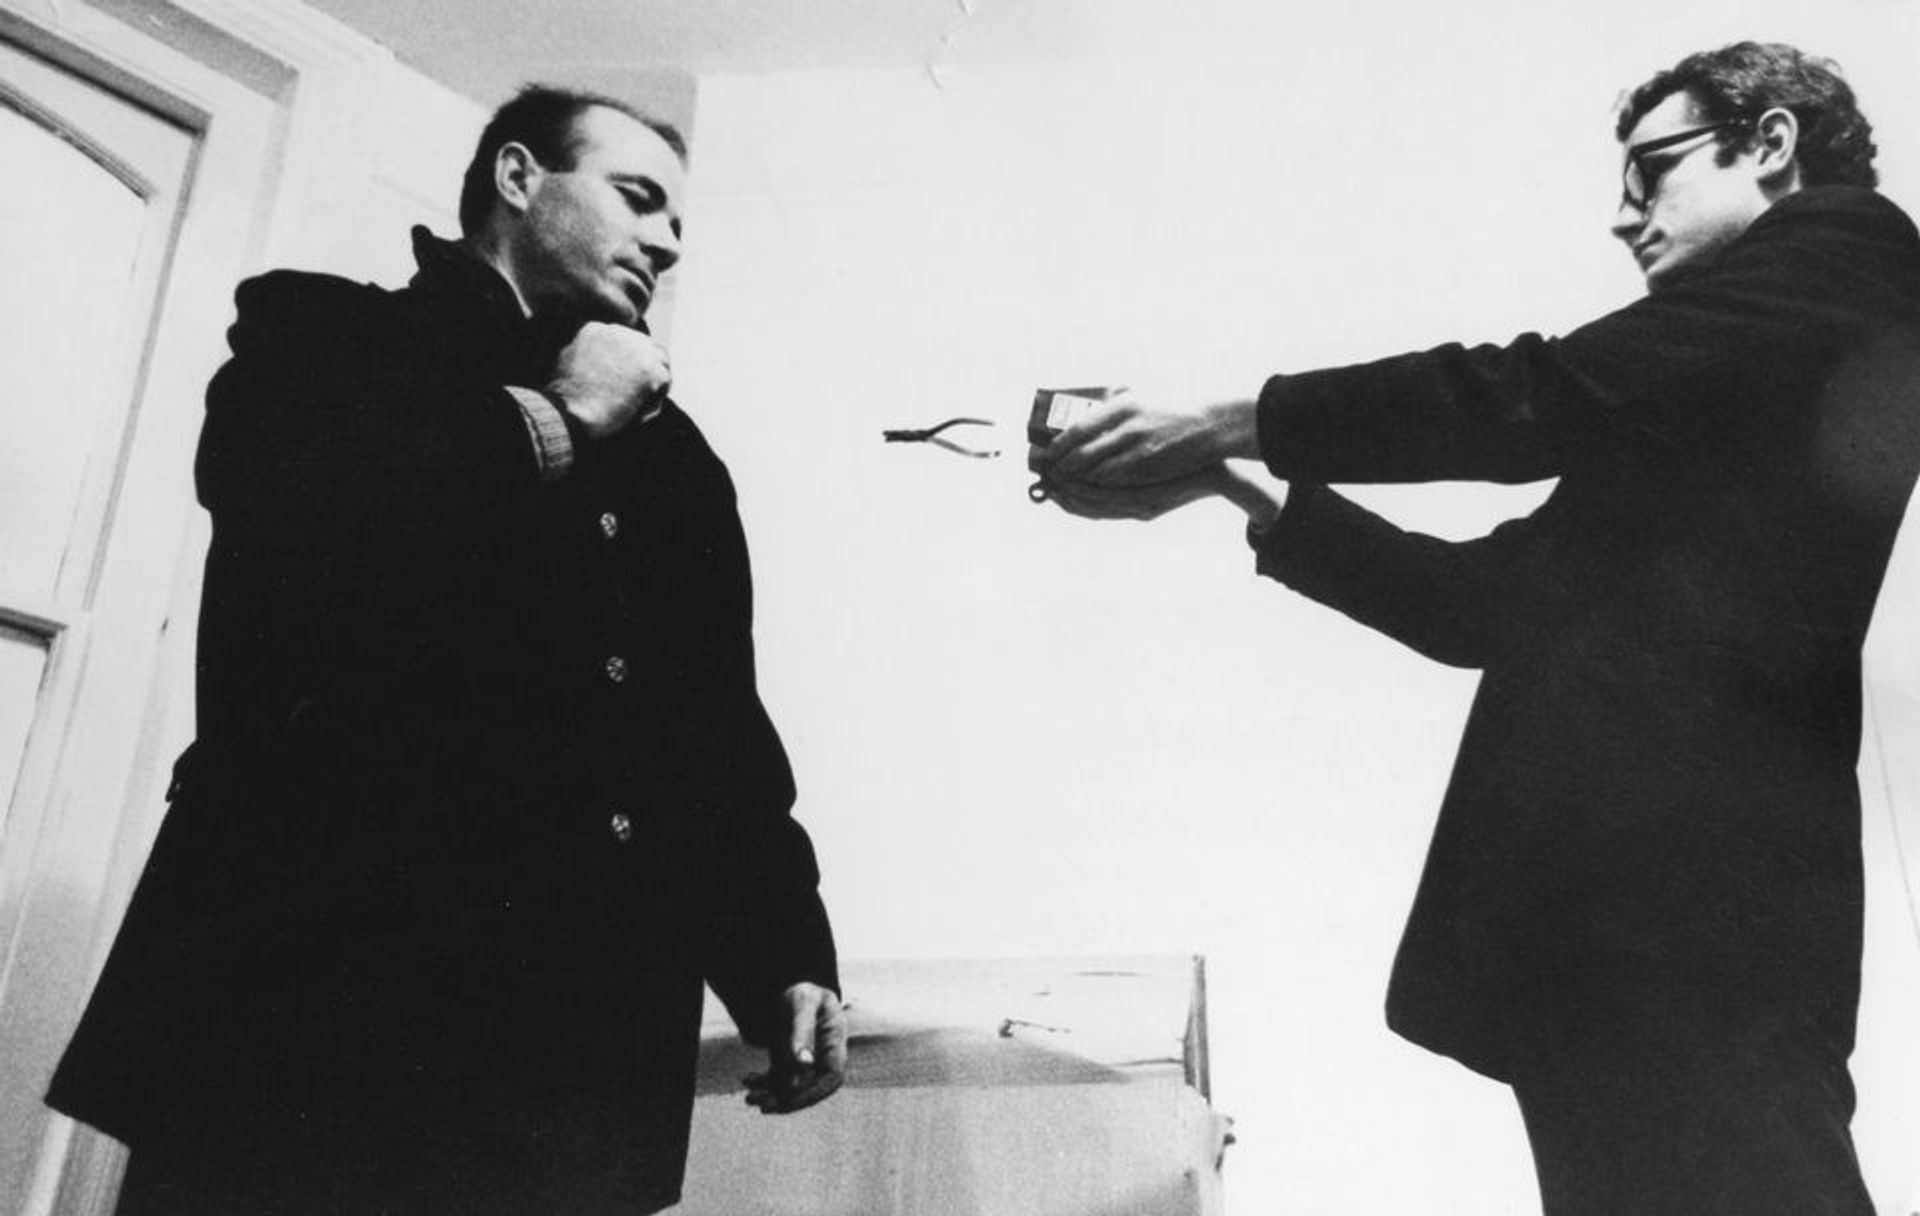 Guy Brett (right) in 1966 with the artist Takis © Clay Perry, England & Co gallery, London